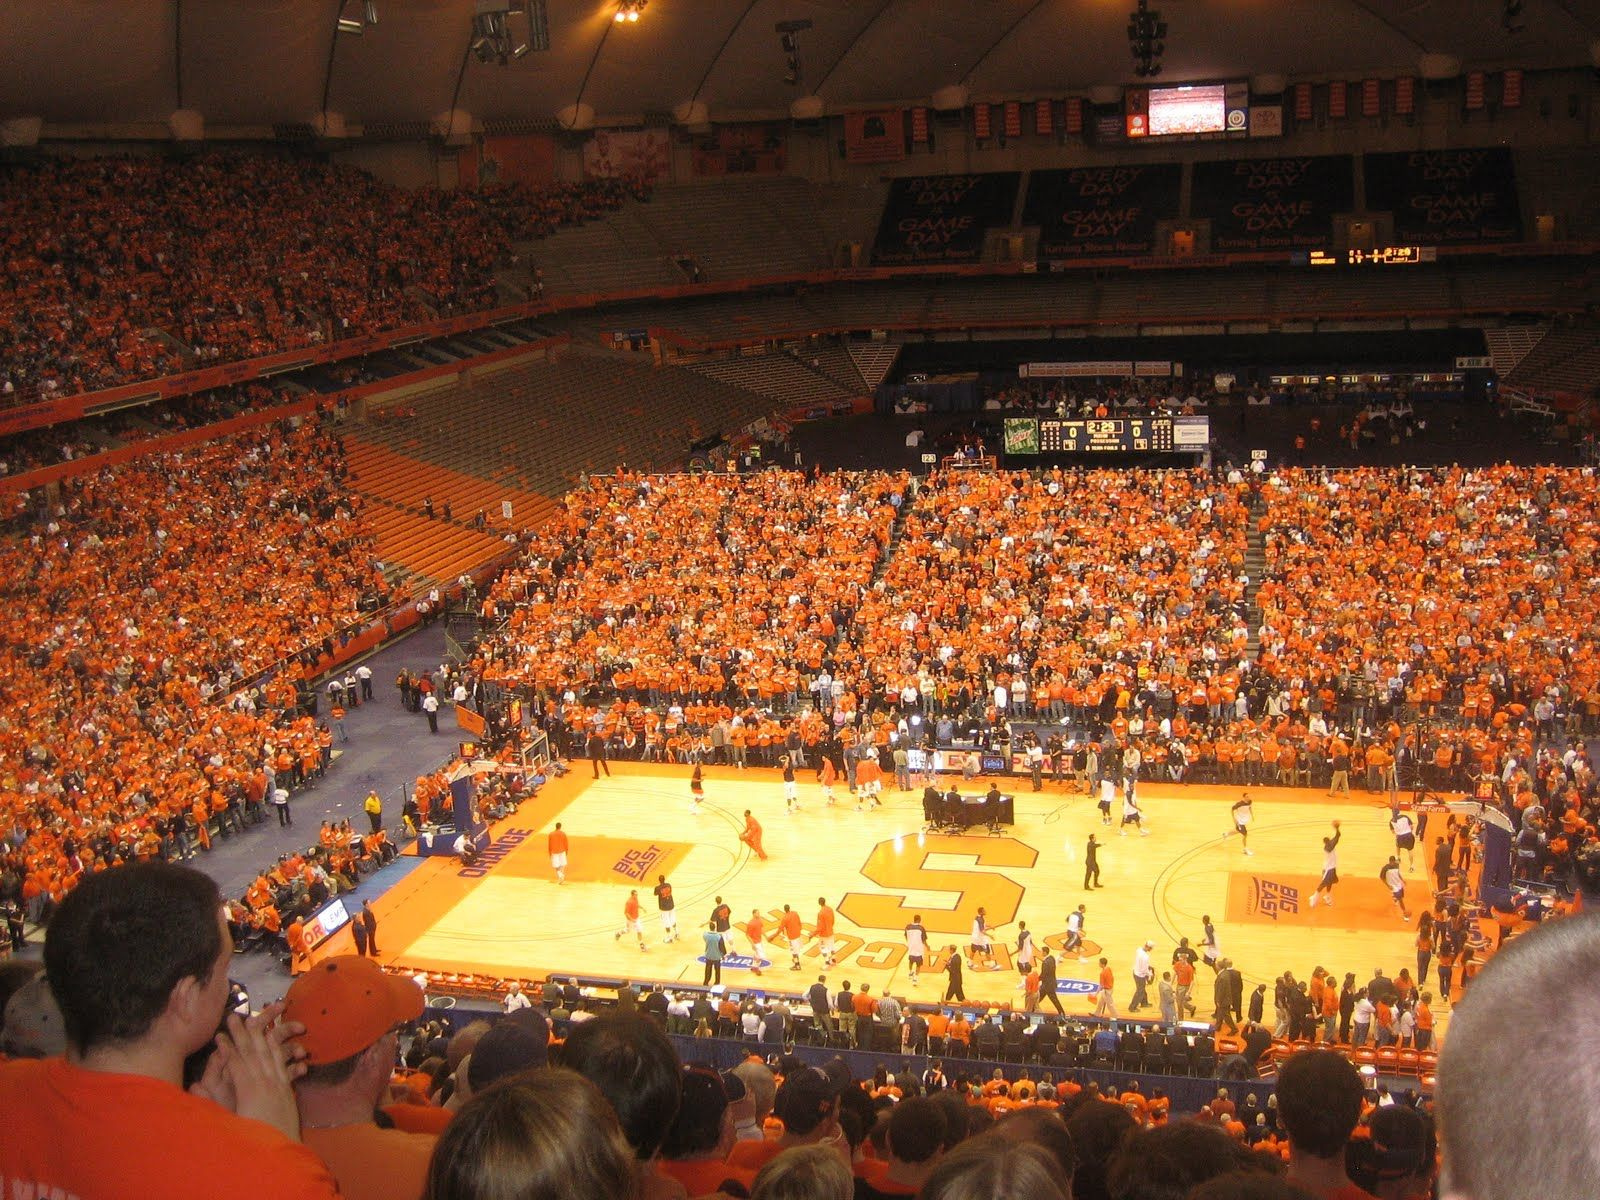 The Carrier Dome Home Of The Syracuse Orange Football